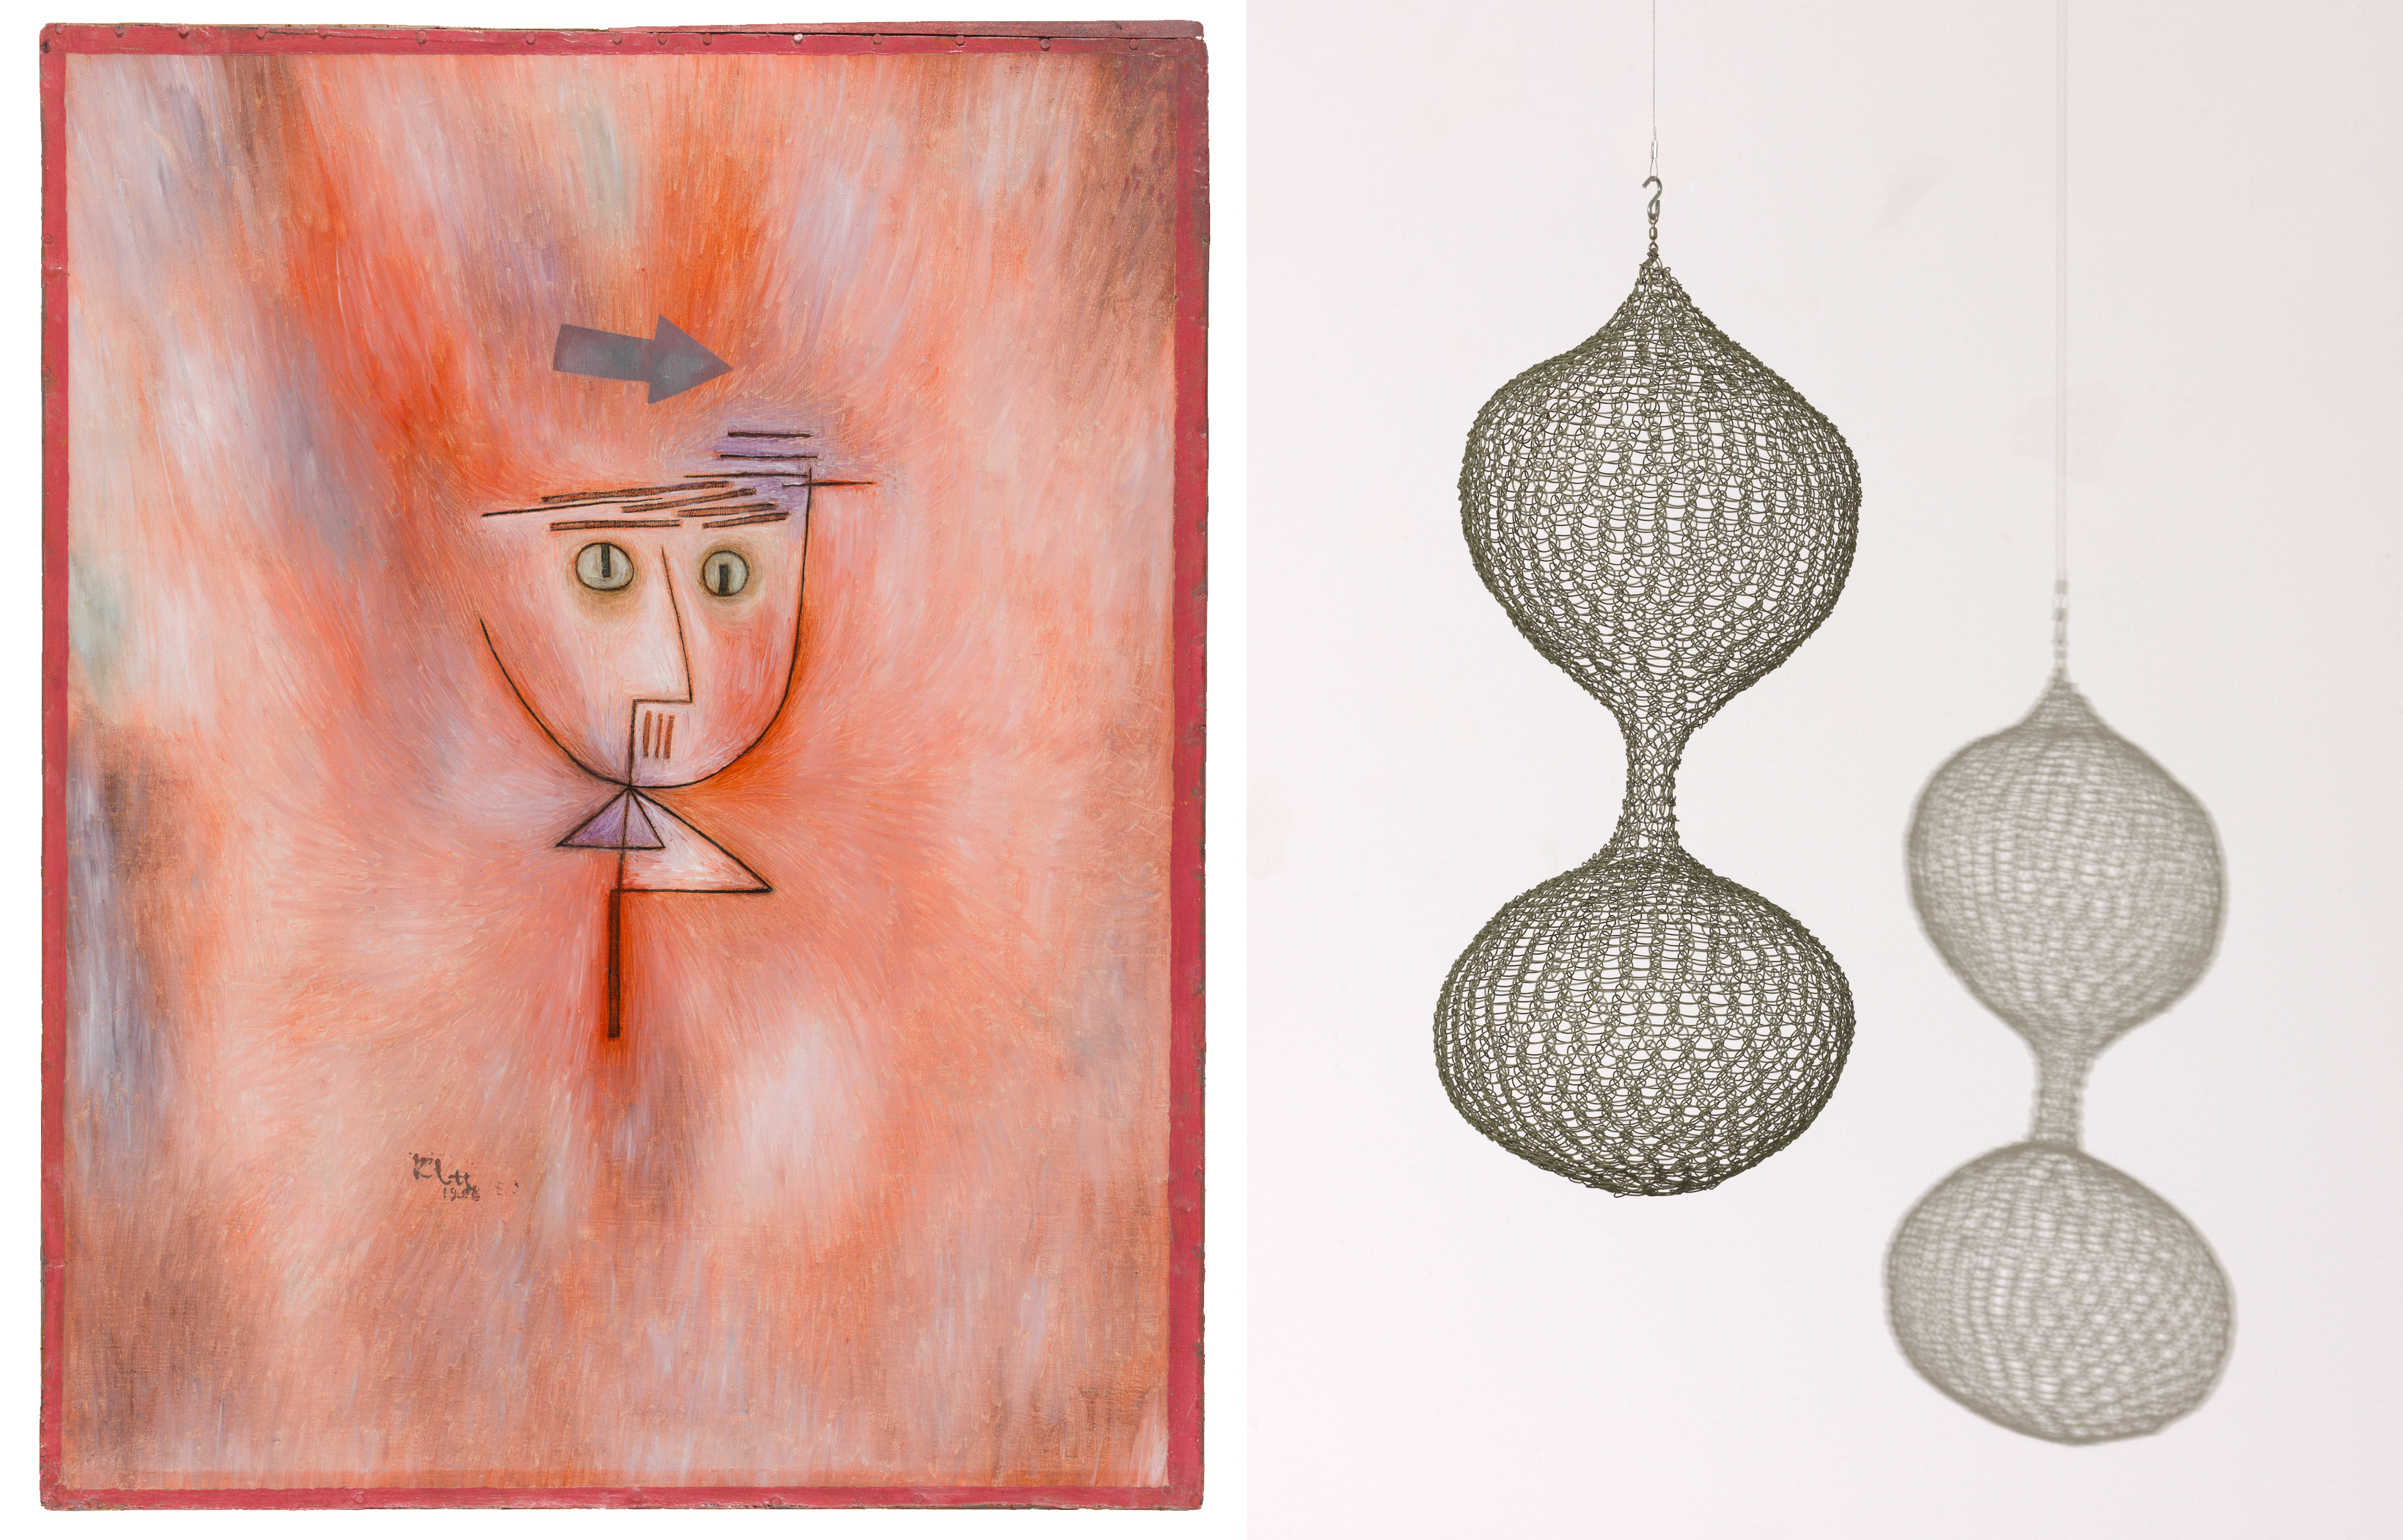 SFMoMA explores affinity of works by Paul Klee and Ruth Asawa